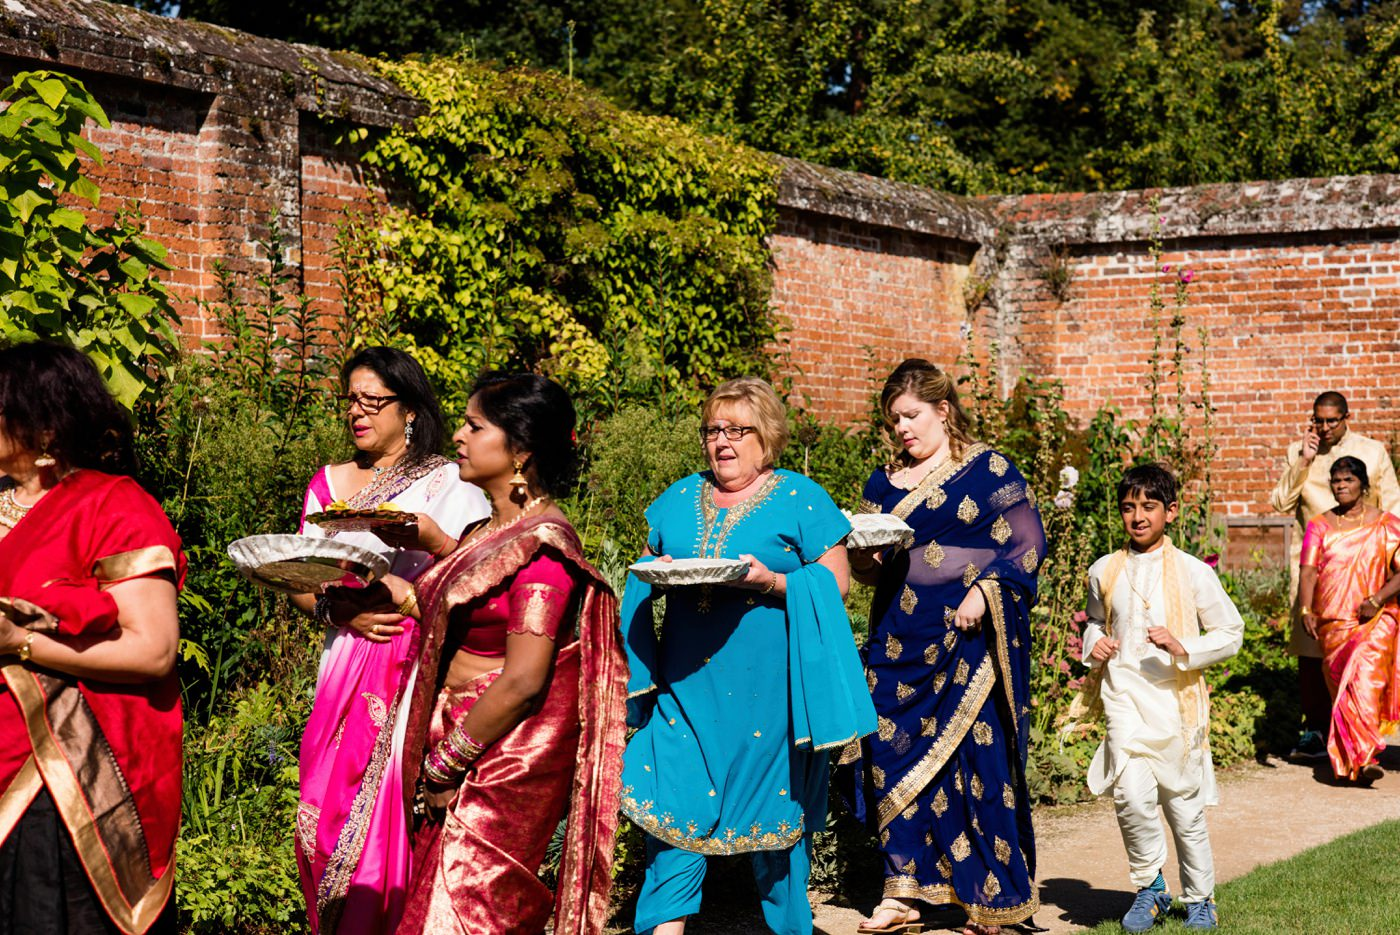 Indian wedding photography Painshill Park Surrey